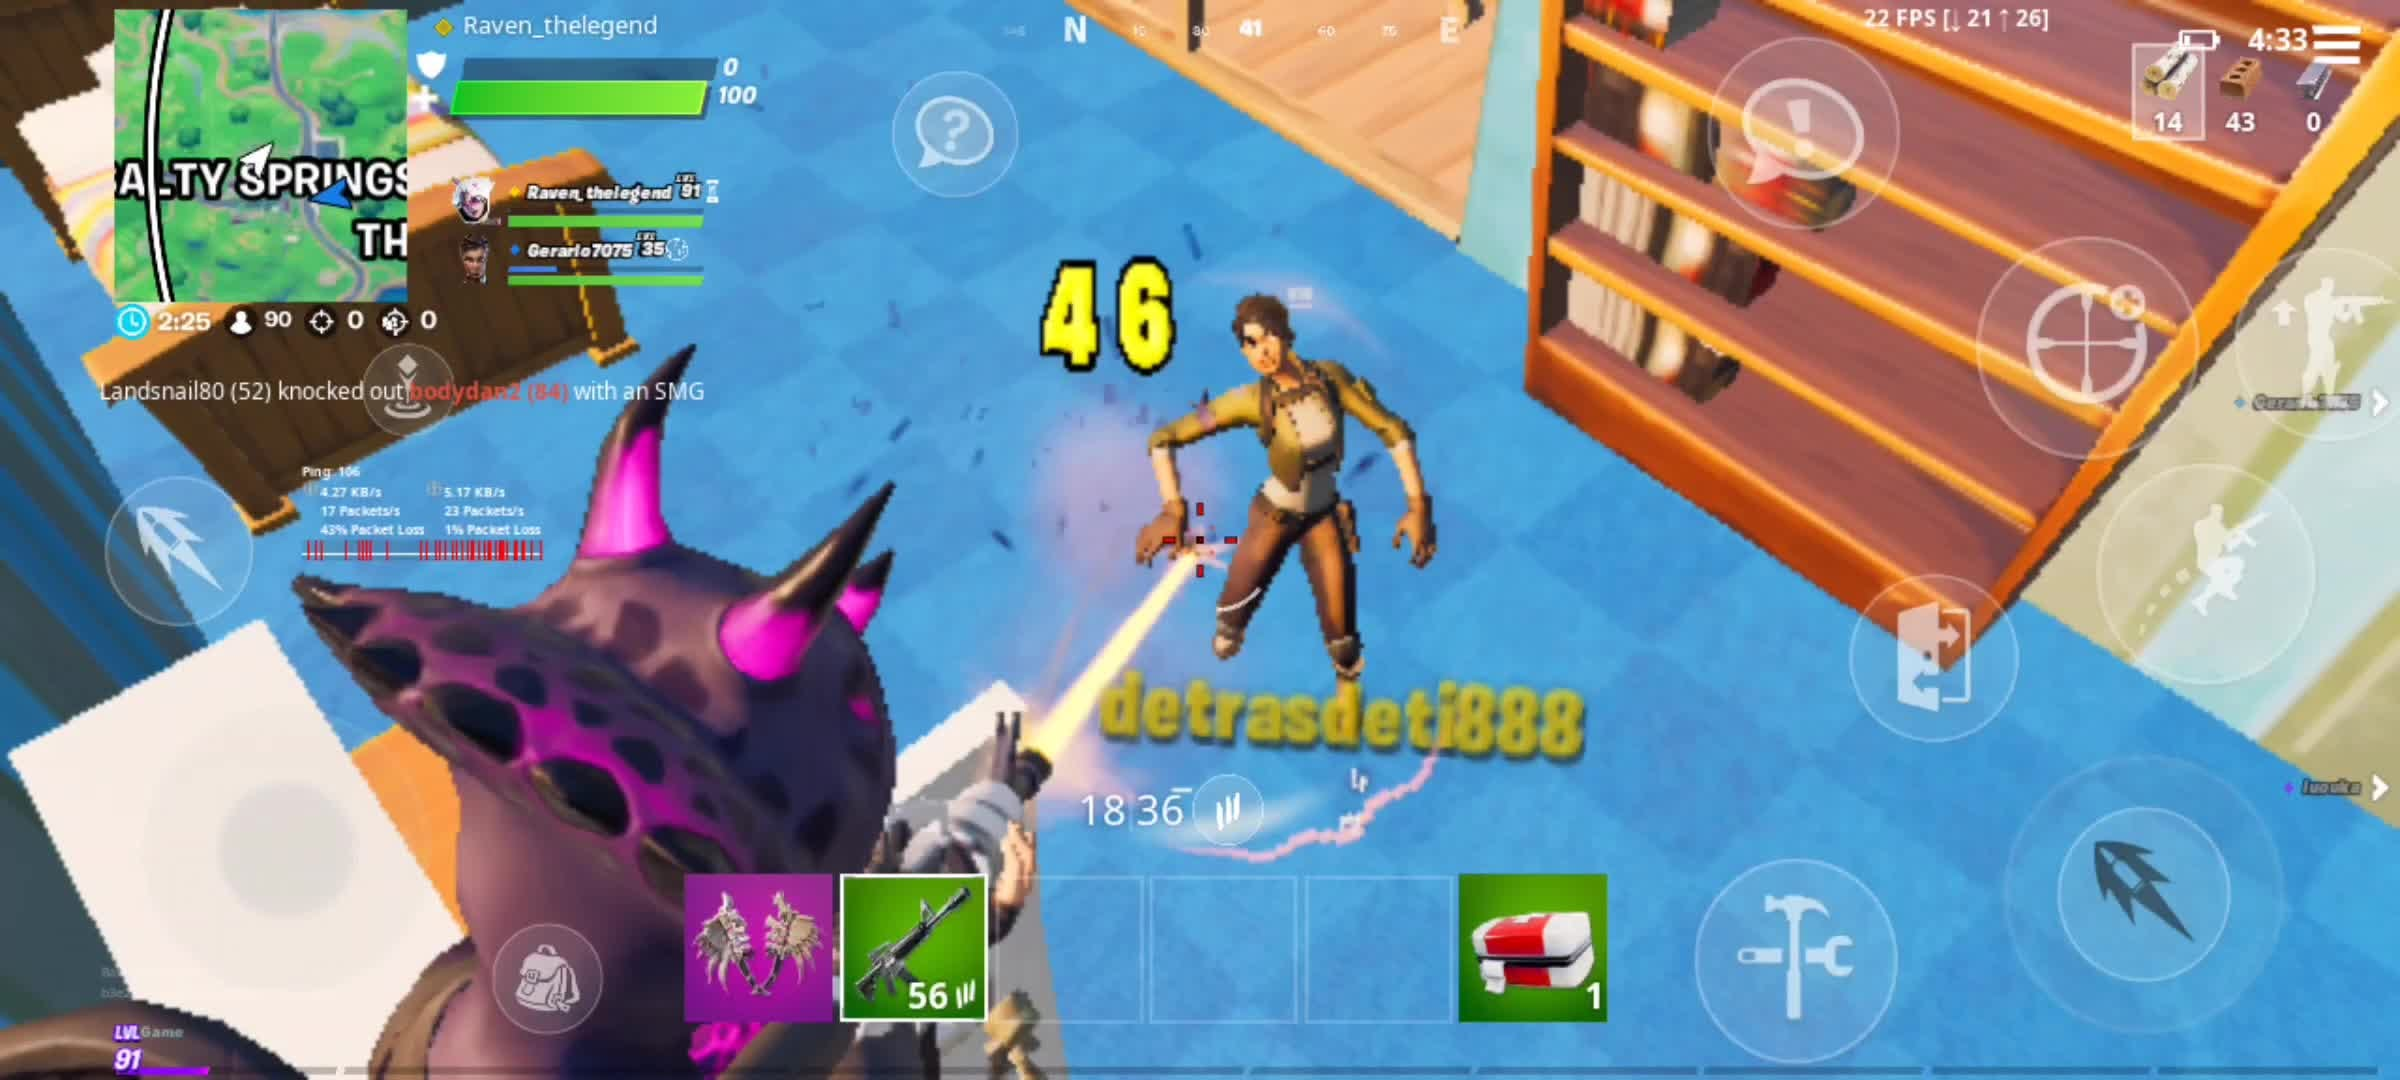 Fortnite: General - Not 2000iq but maybe 500iq video cover image 0